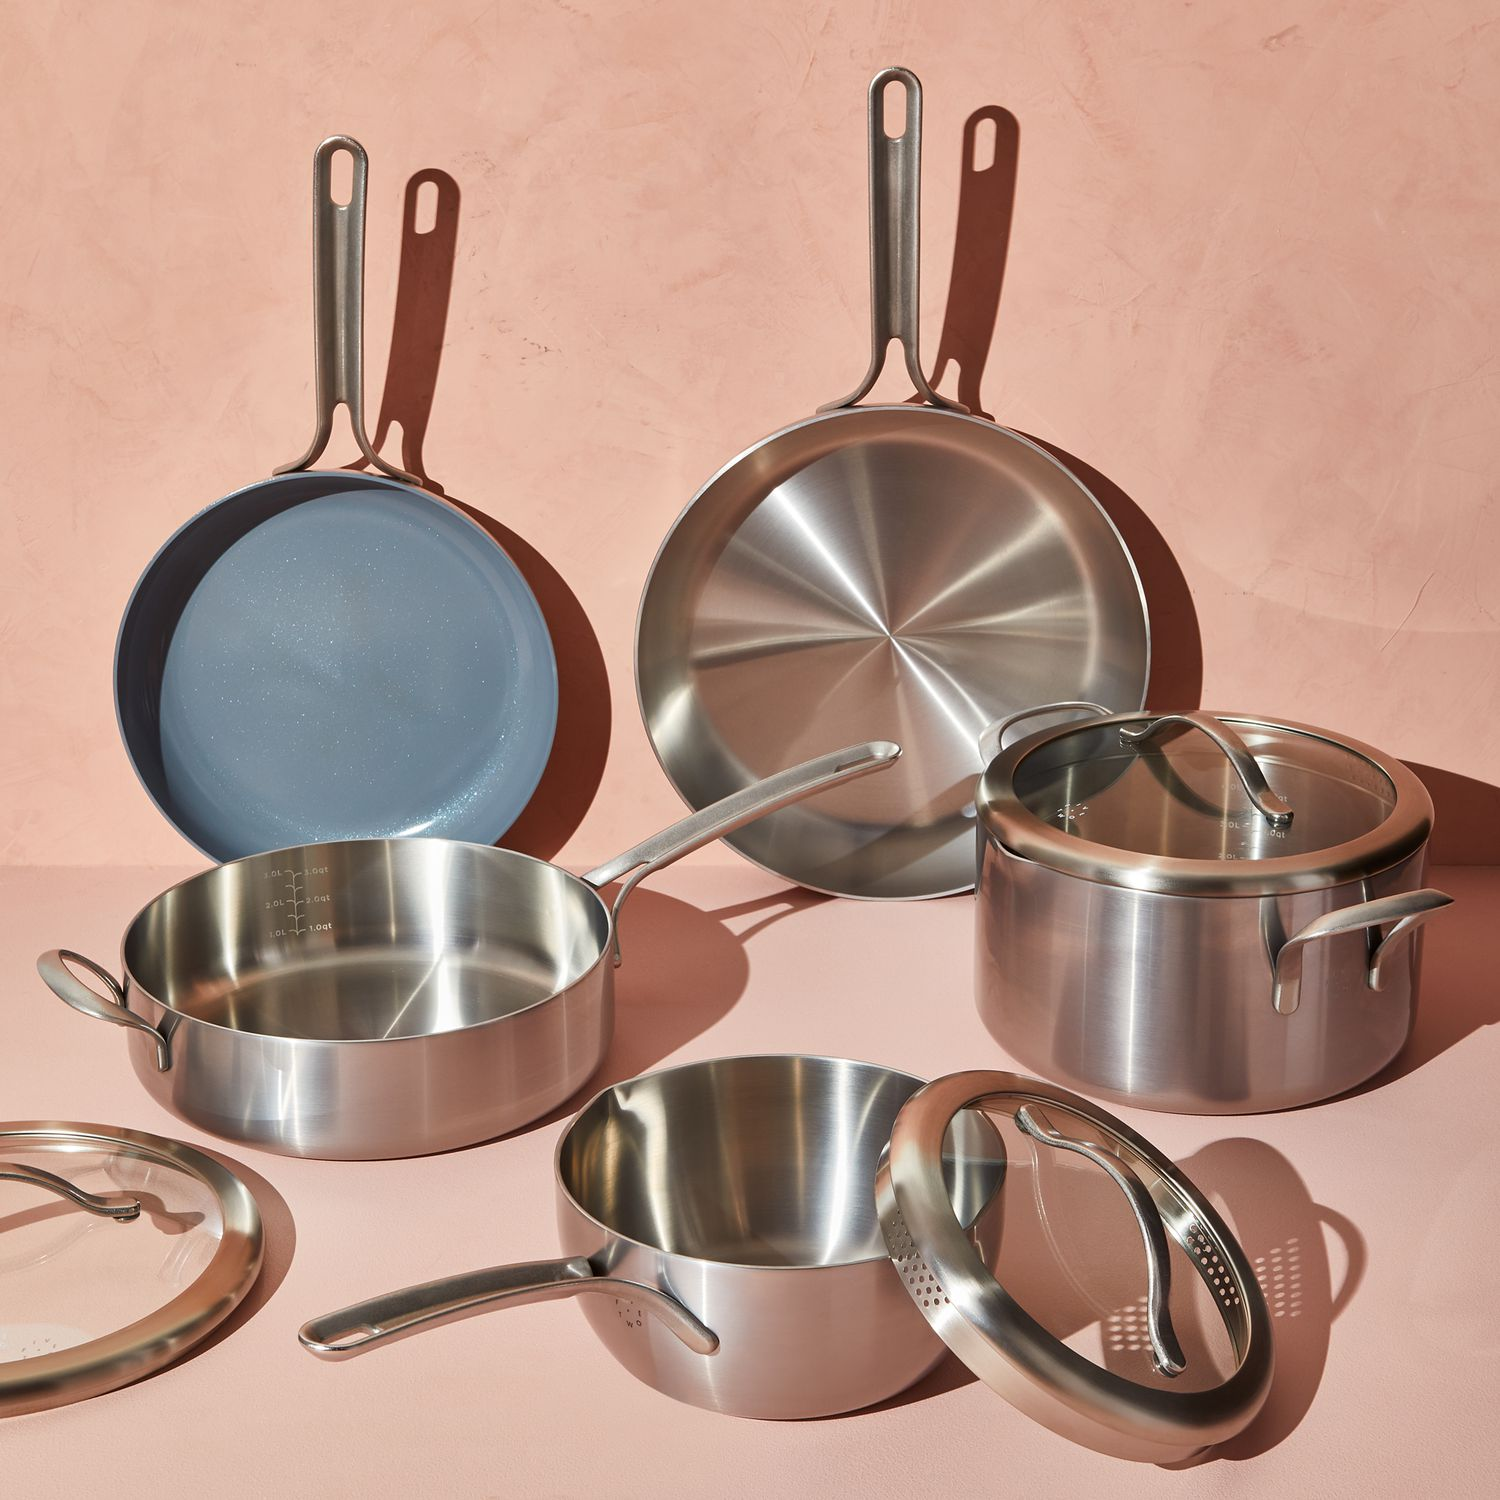 Five Two Essential Cookware Set From Food52 Nonstick Stainless Steel On Food52